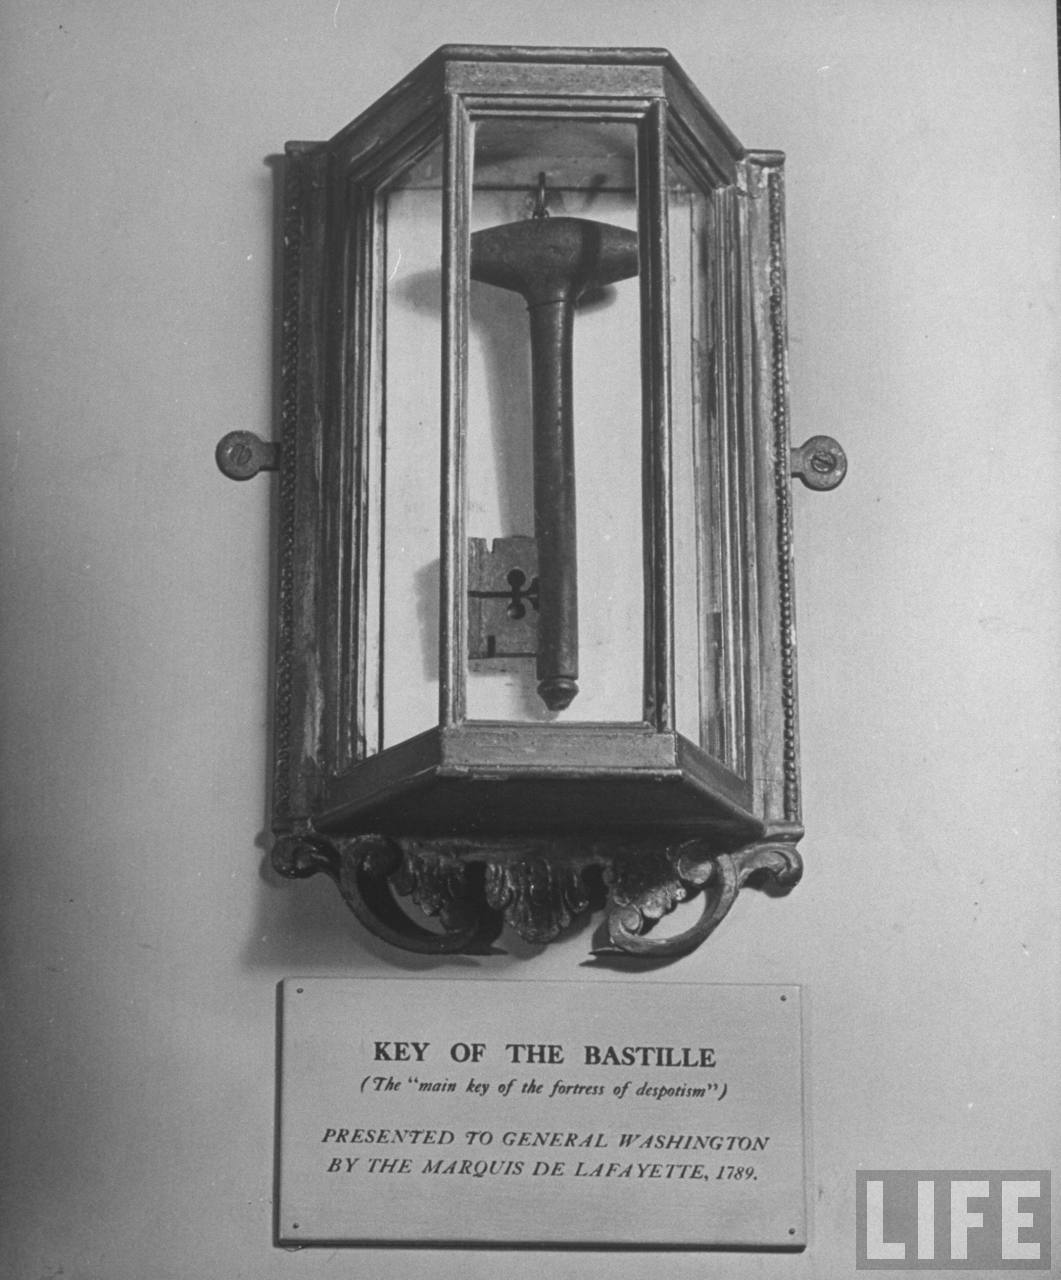 Key to the Bastille at Mount Vernon